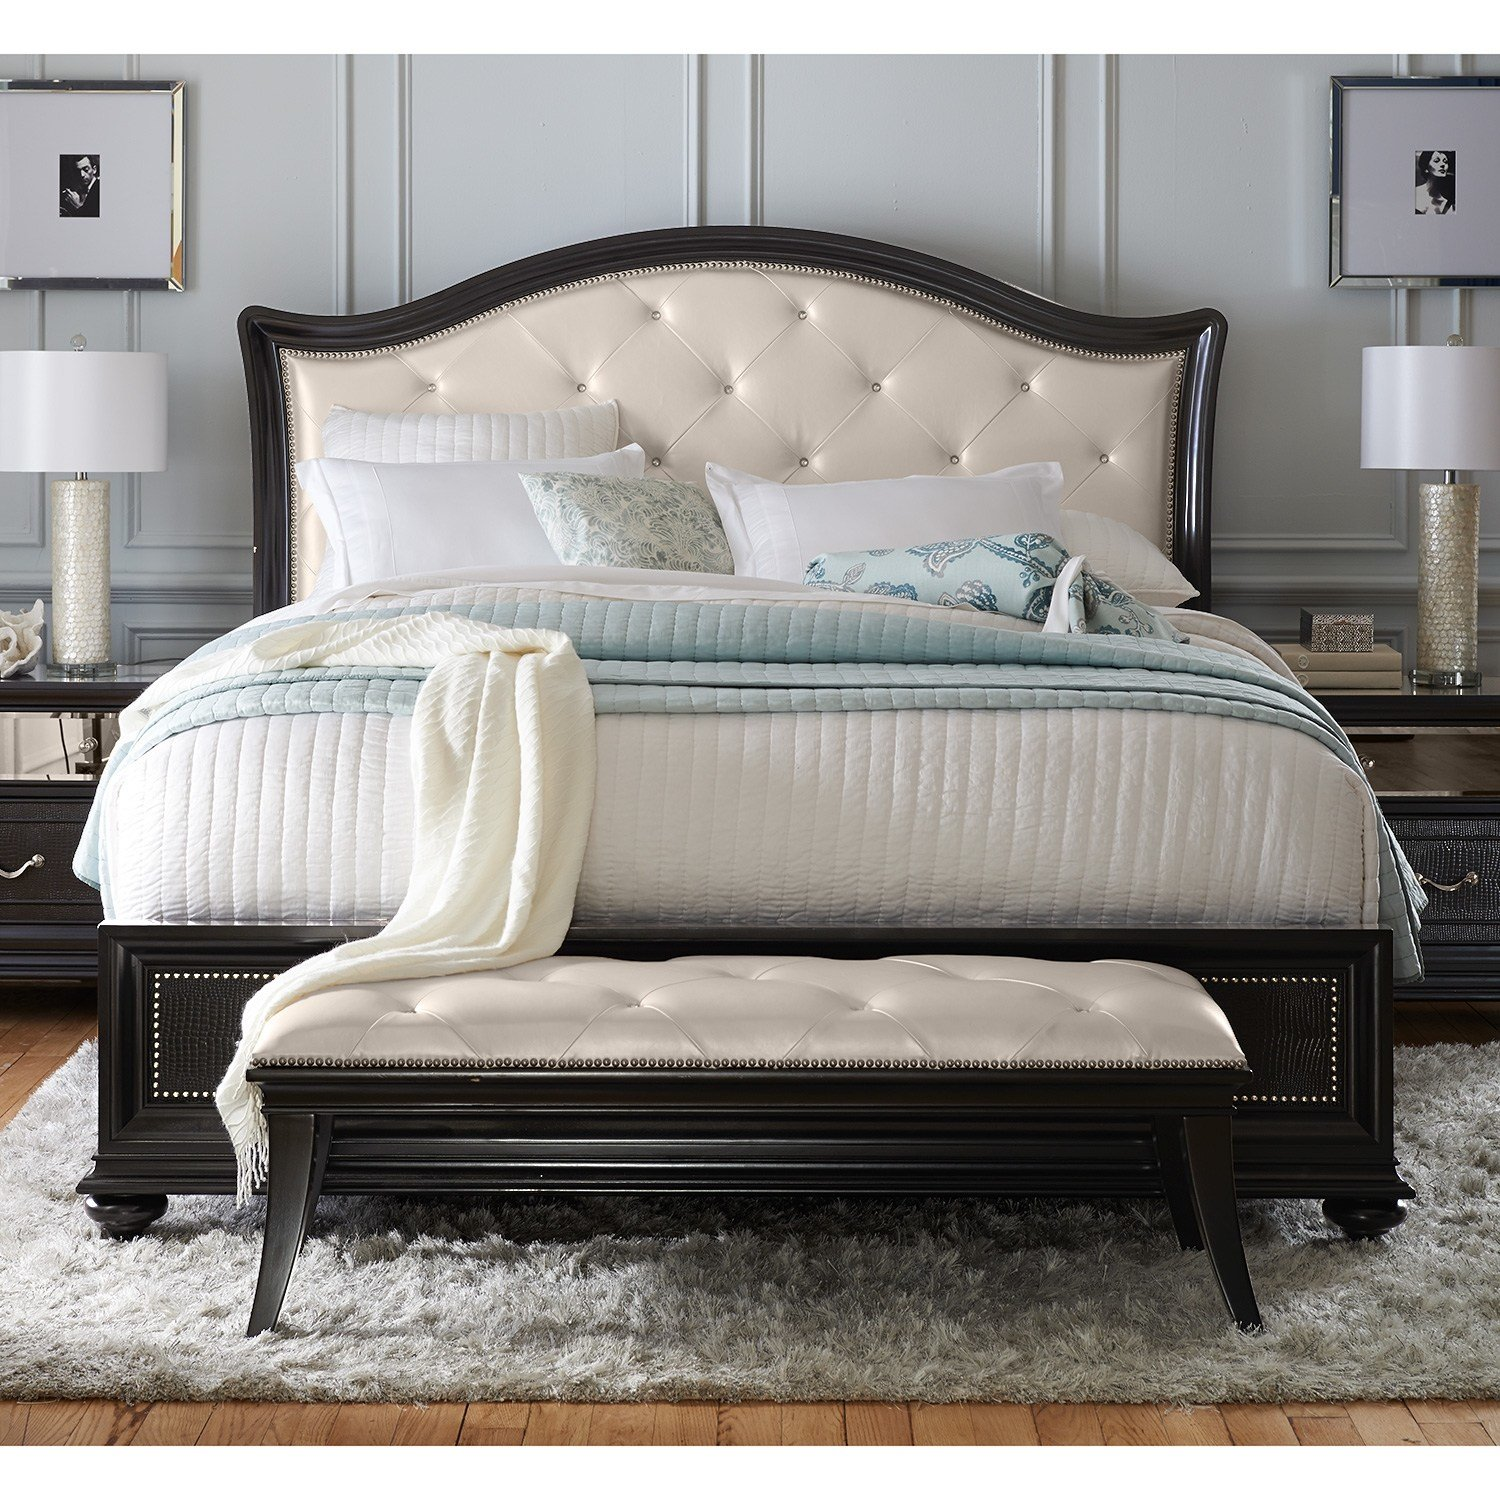 Best Furnisher Bed Farnichar Design Cheap Bedroom Sets With Pictures